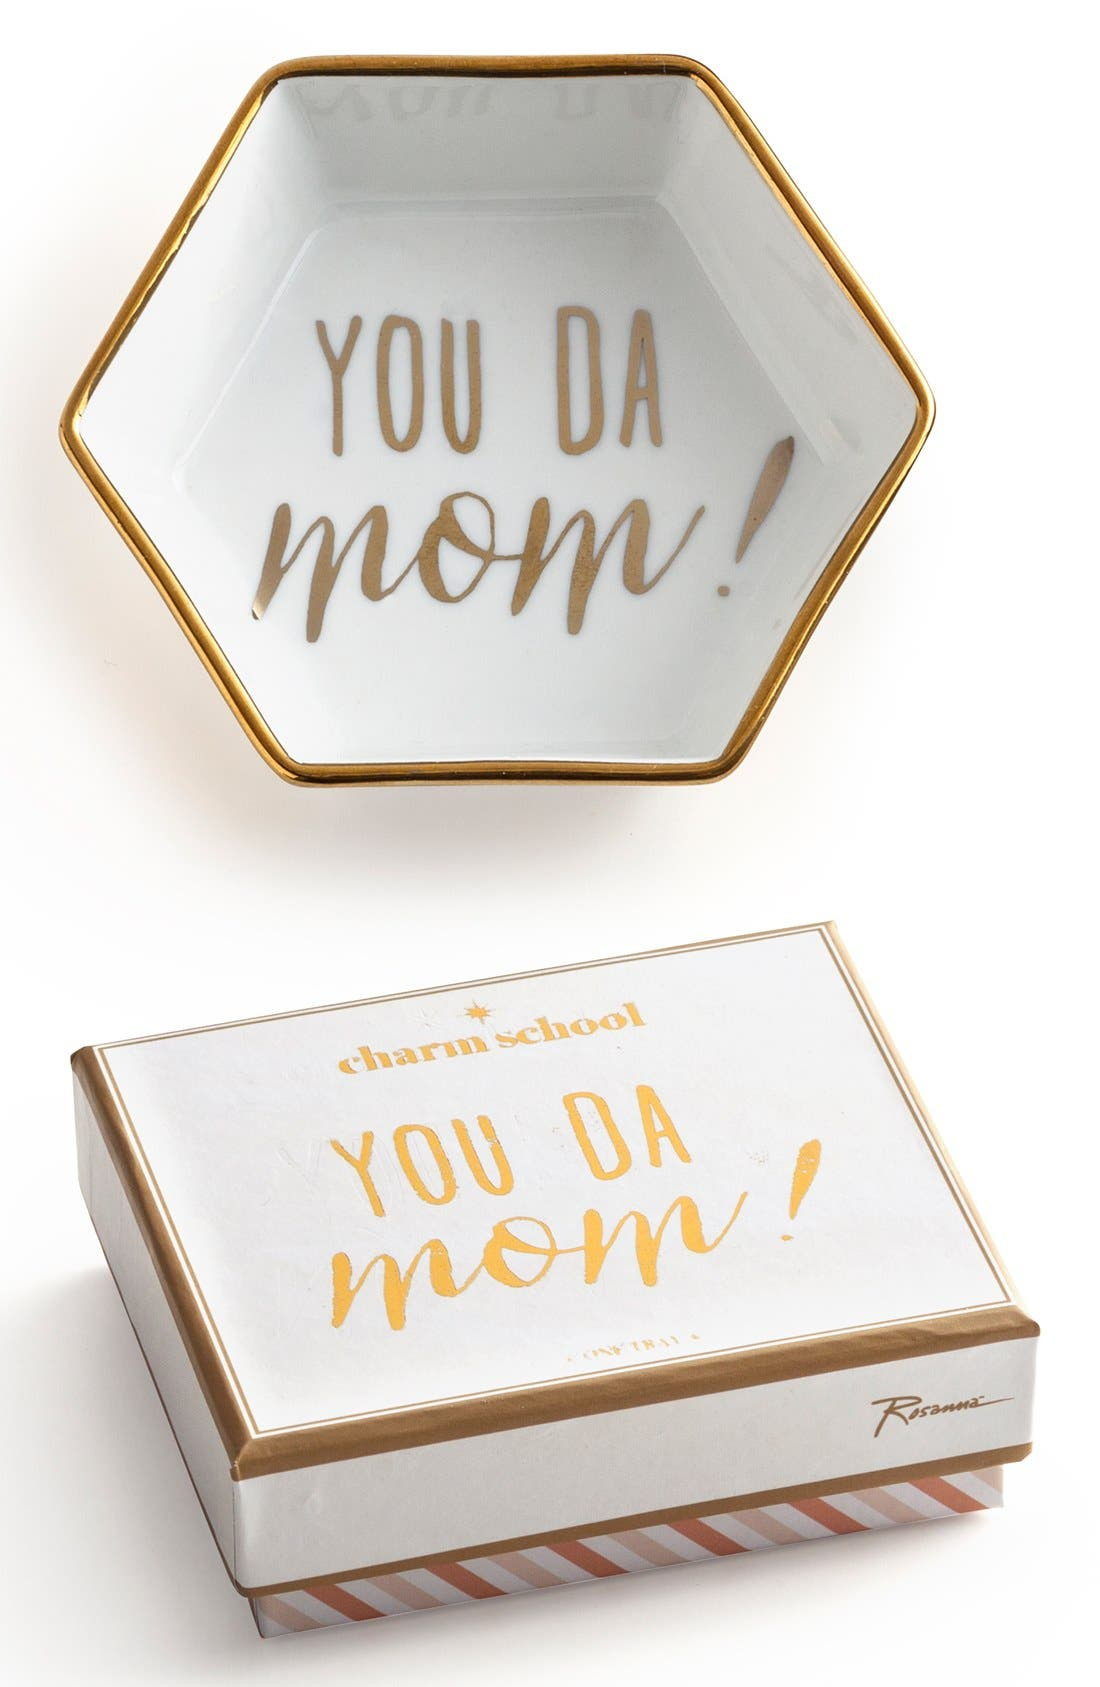 Rosanna 'You Da Mom' Porcelain Trinket Tray